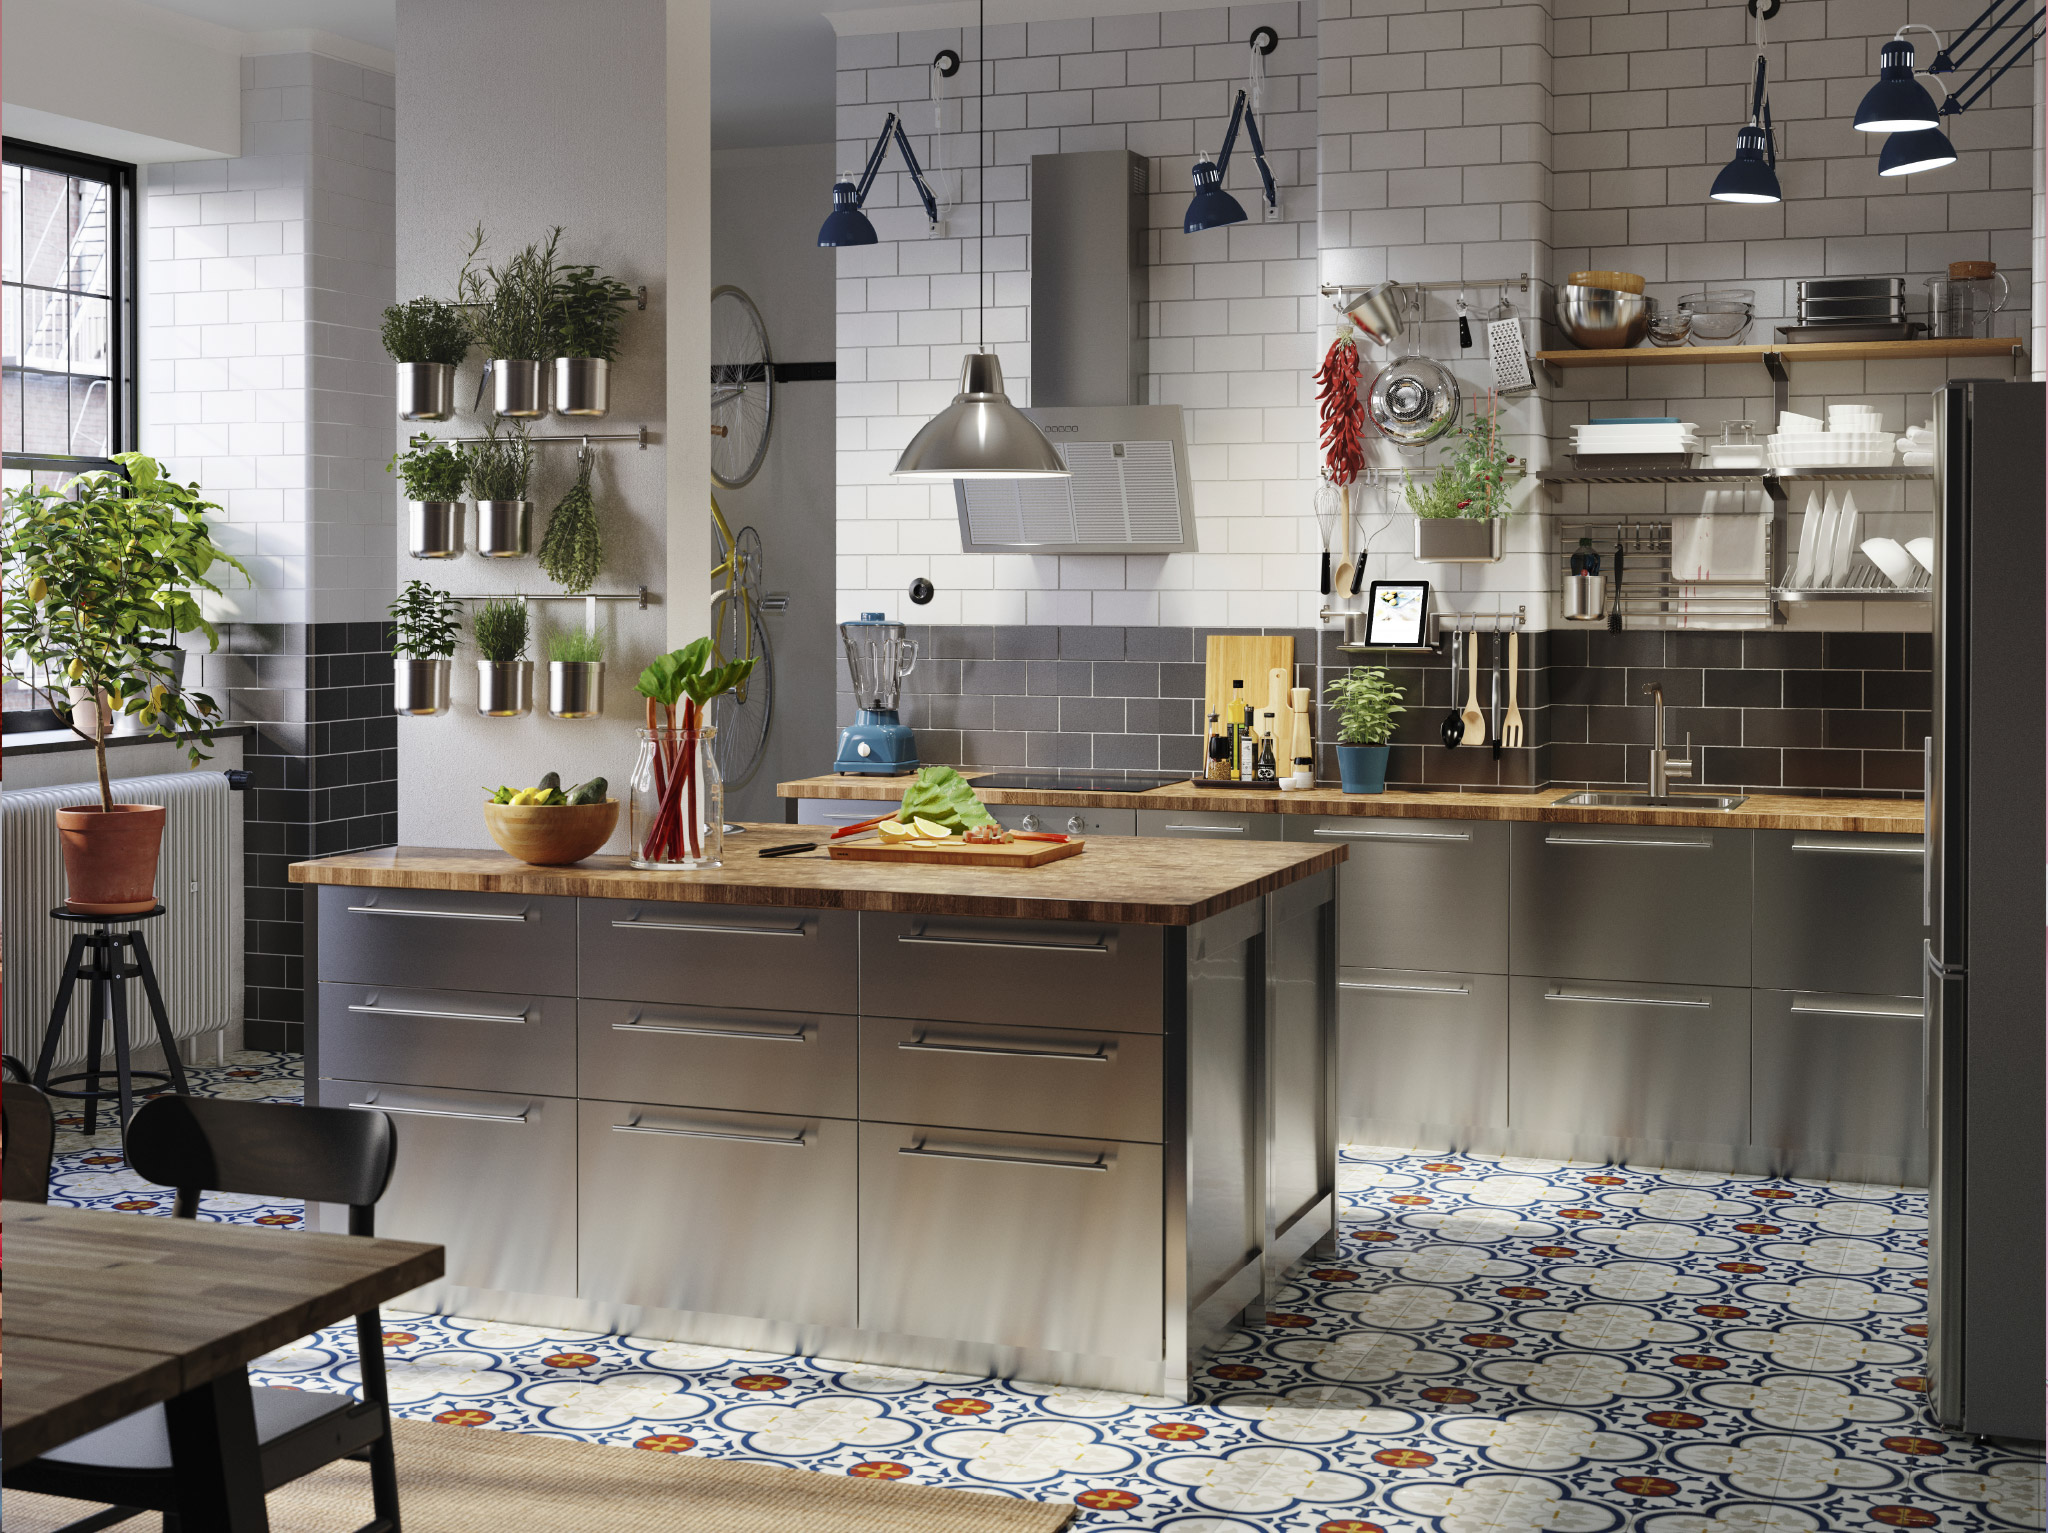 A large kitchen with fronts in stainless steel, worktops in oak/veneer, blue industrial work lamps and herbs in containers.